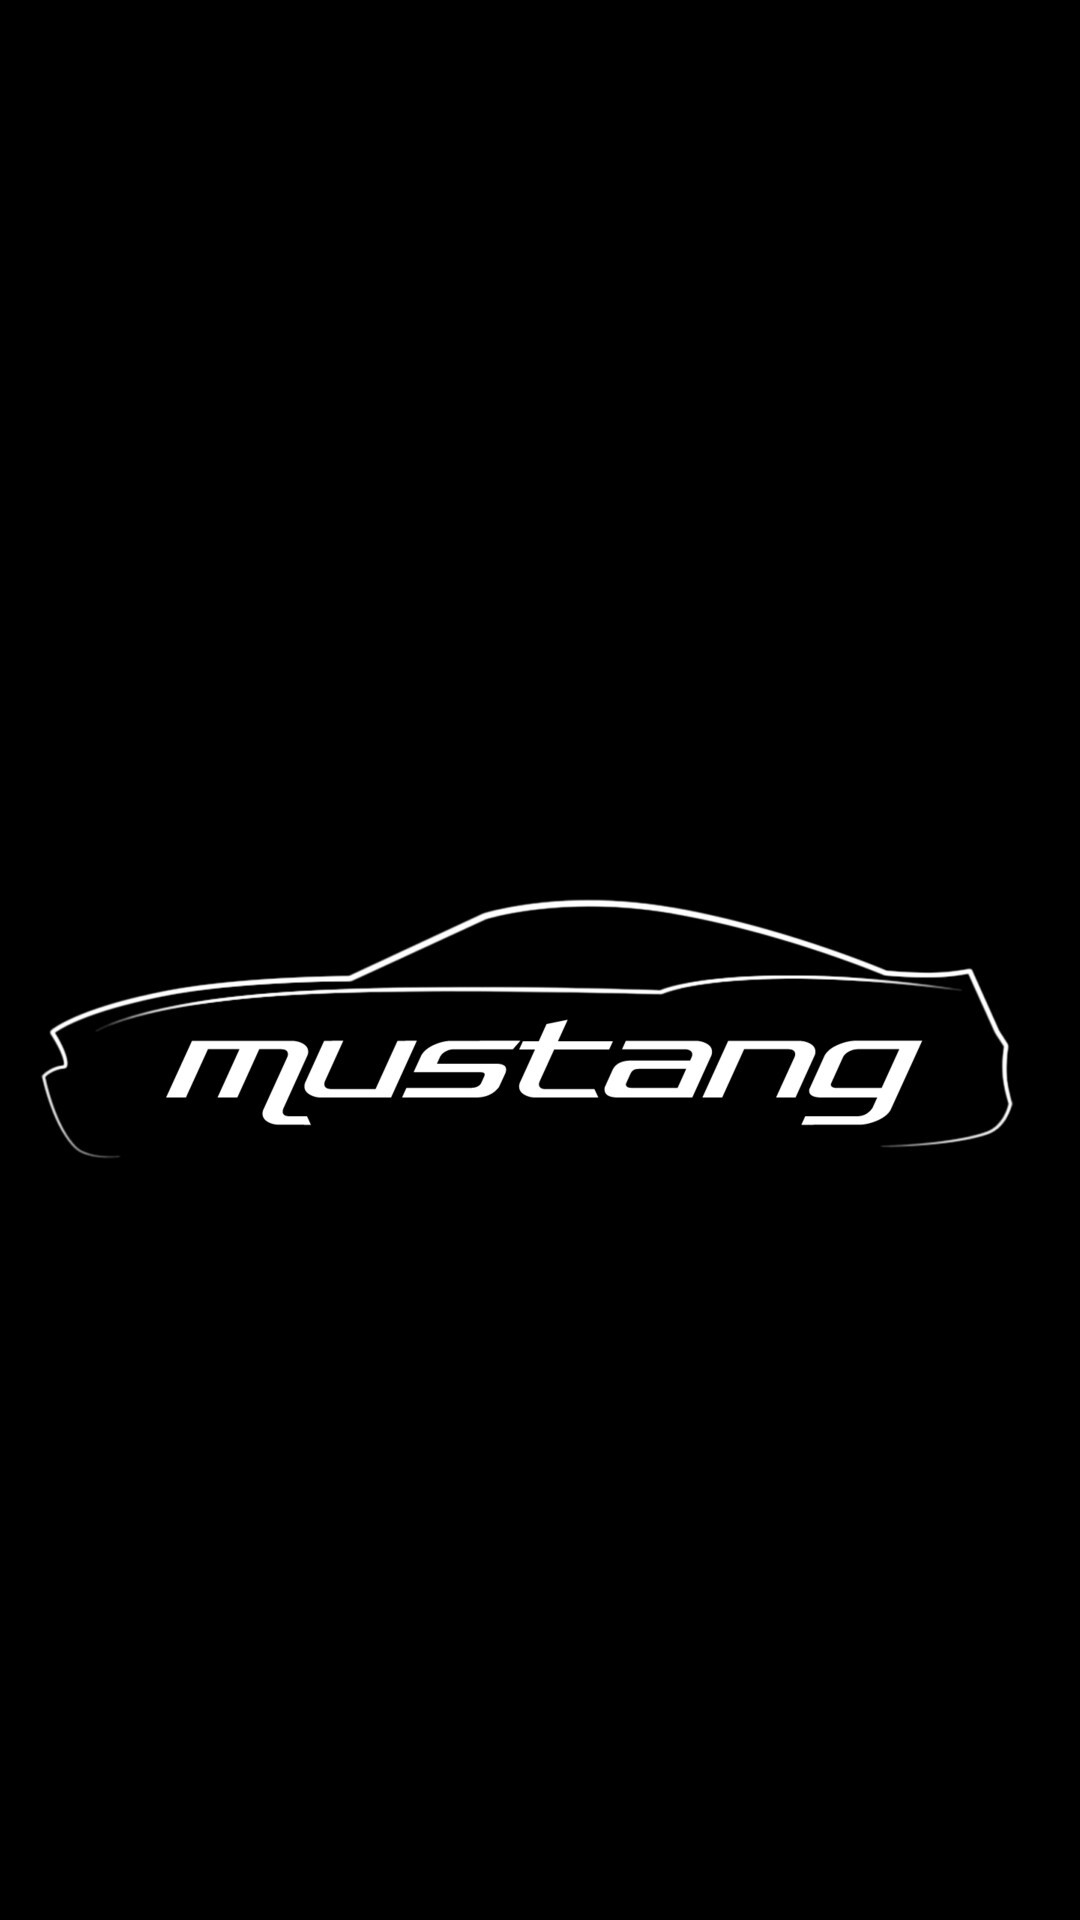 Hey guys here's a nice HQ Mustang Wallpaper for you.Stay tuned  several Roadkill Wallpapers coming up soon :)